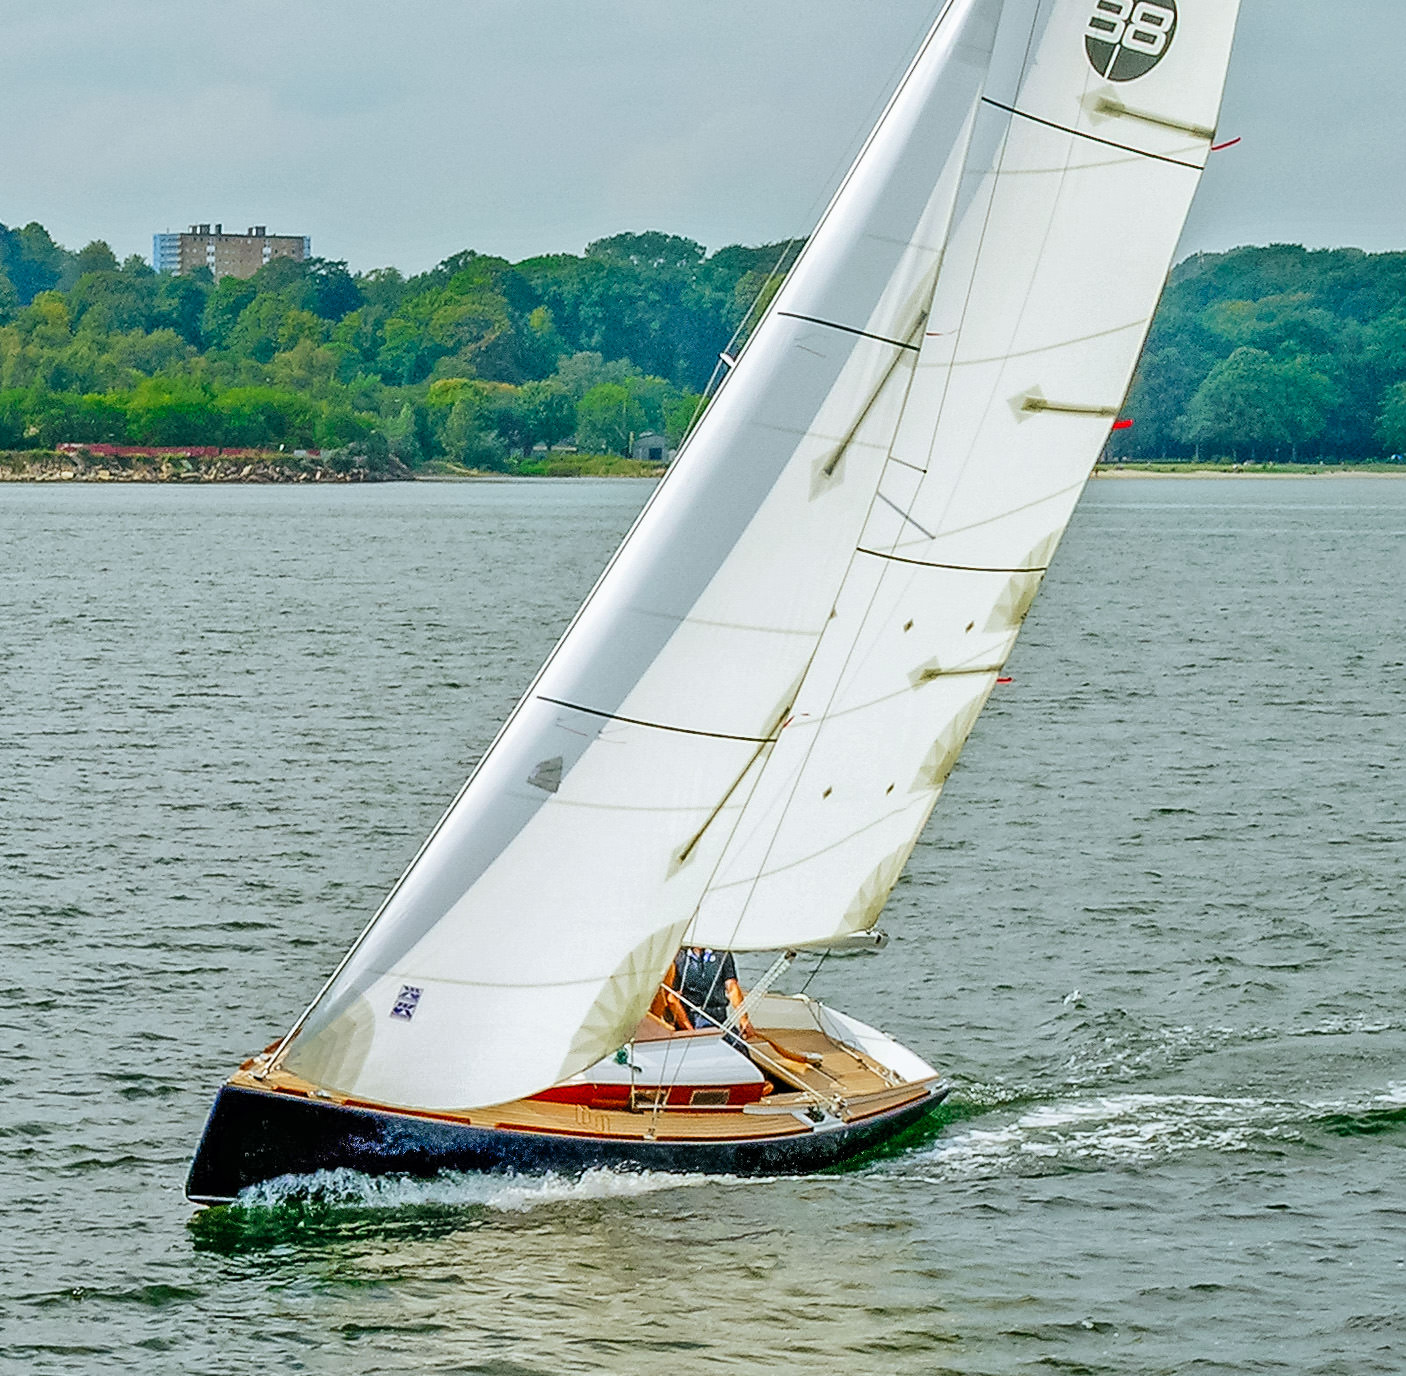 Modern classic daysailer with Dacron cruising mainsail and roller-furling jib with vertical battens.